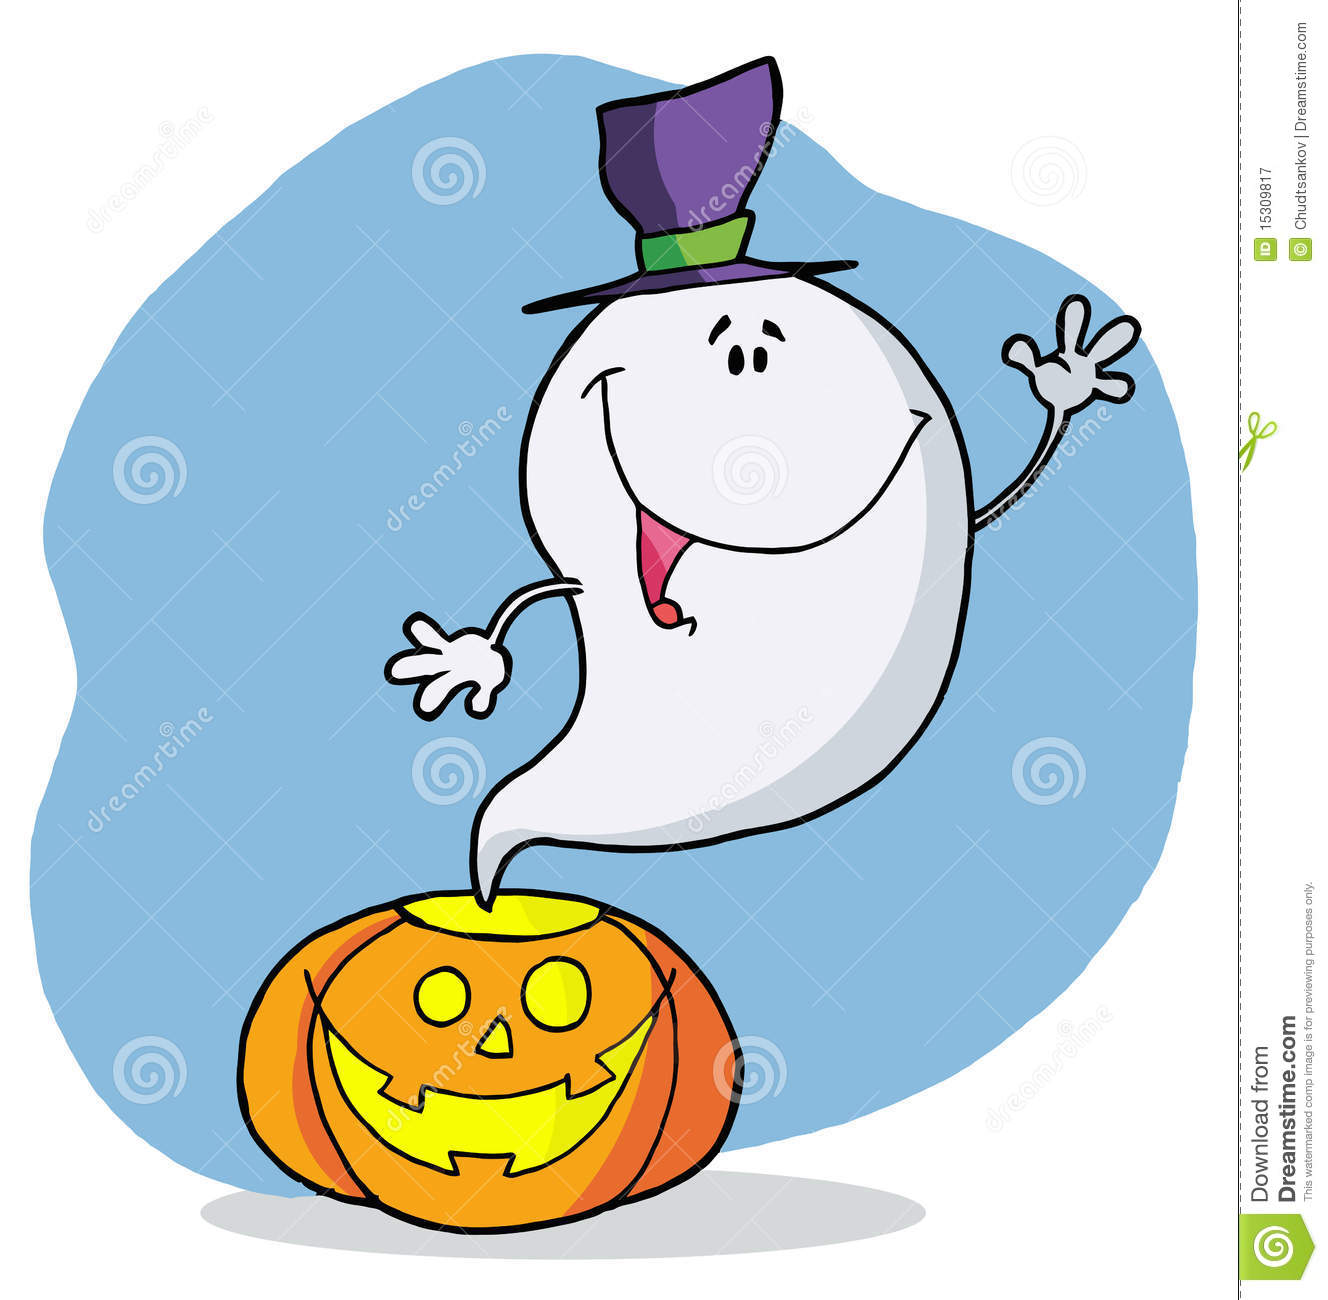 Ghostly clipart cartoon character Friendly Free Ghost Clipart friendly%20ghost%20clipart